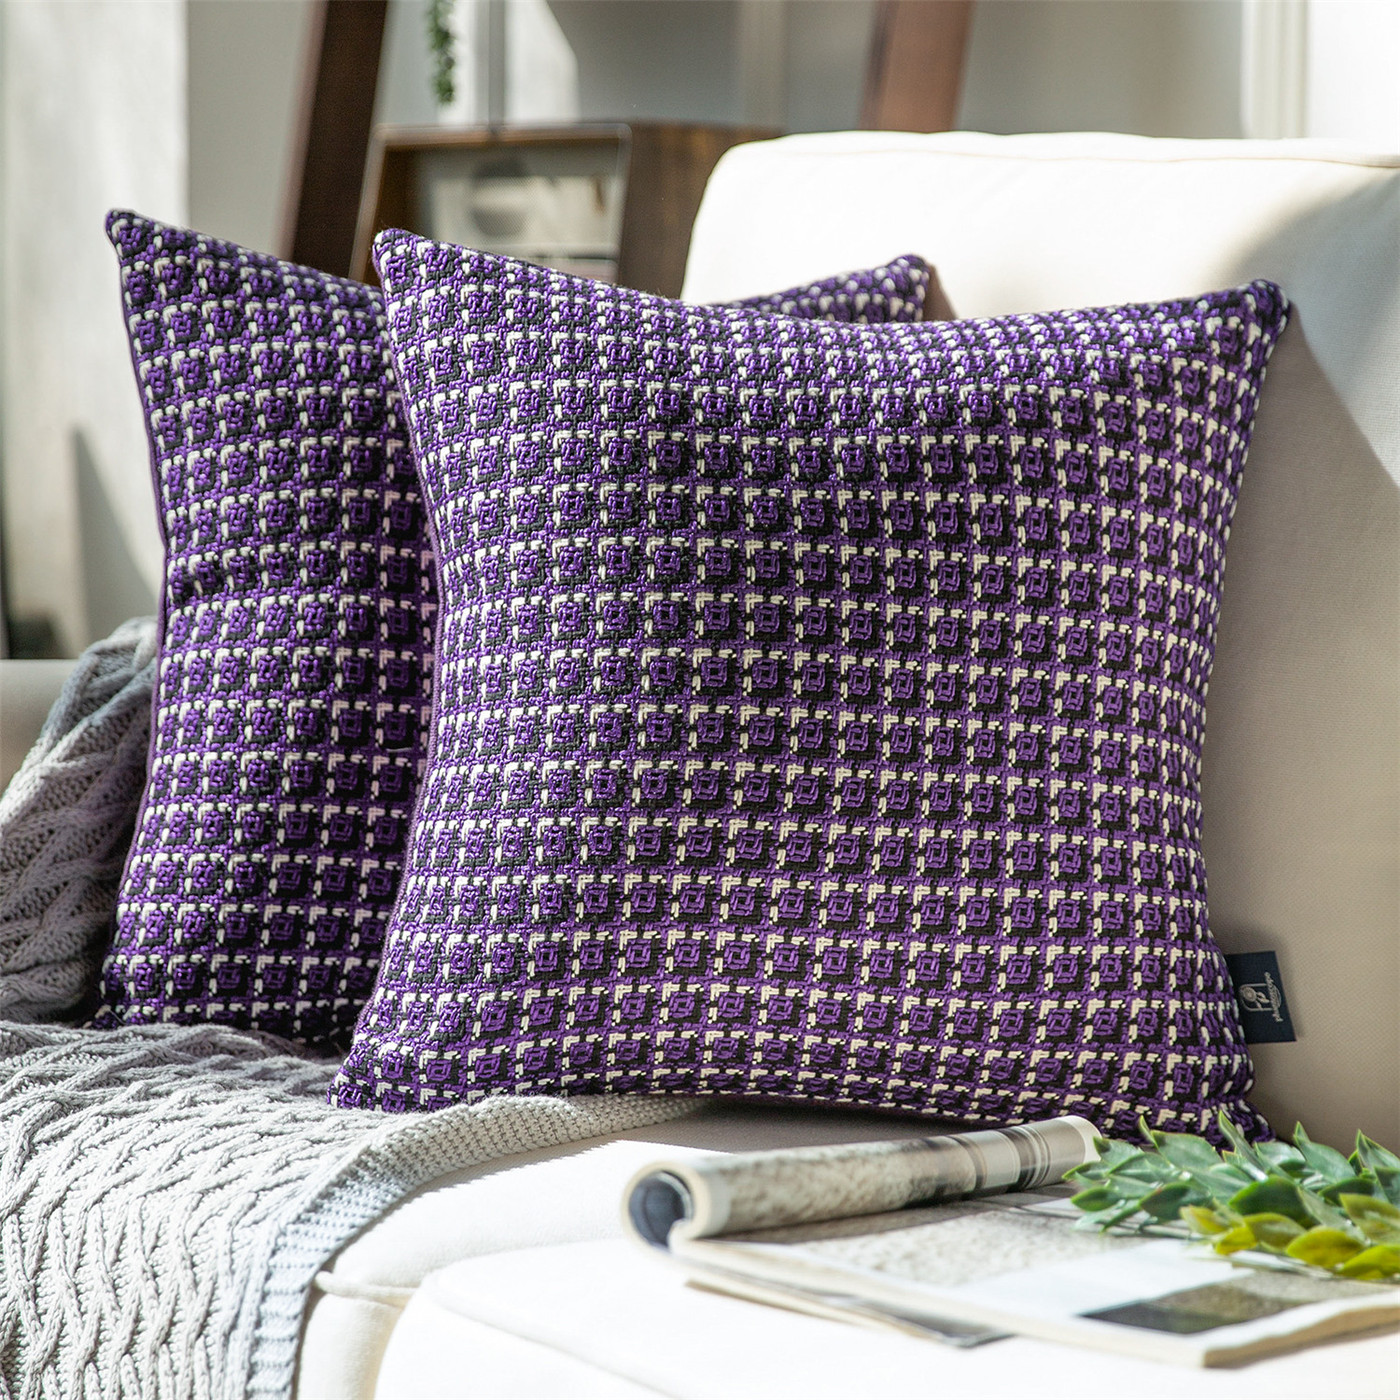 Phantoscope Classic Woven Textured Geometric Houndstooth Pattern Series Decorative Throw Pillow 18 X 18 Purple 2 Pack Walmart Com Walmart Com